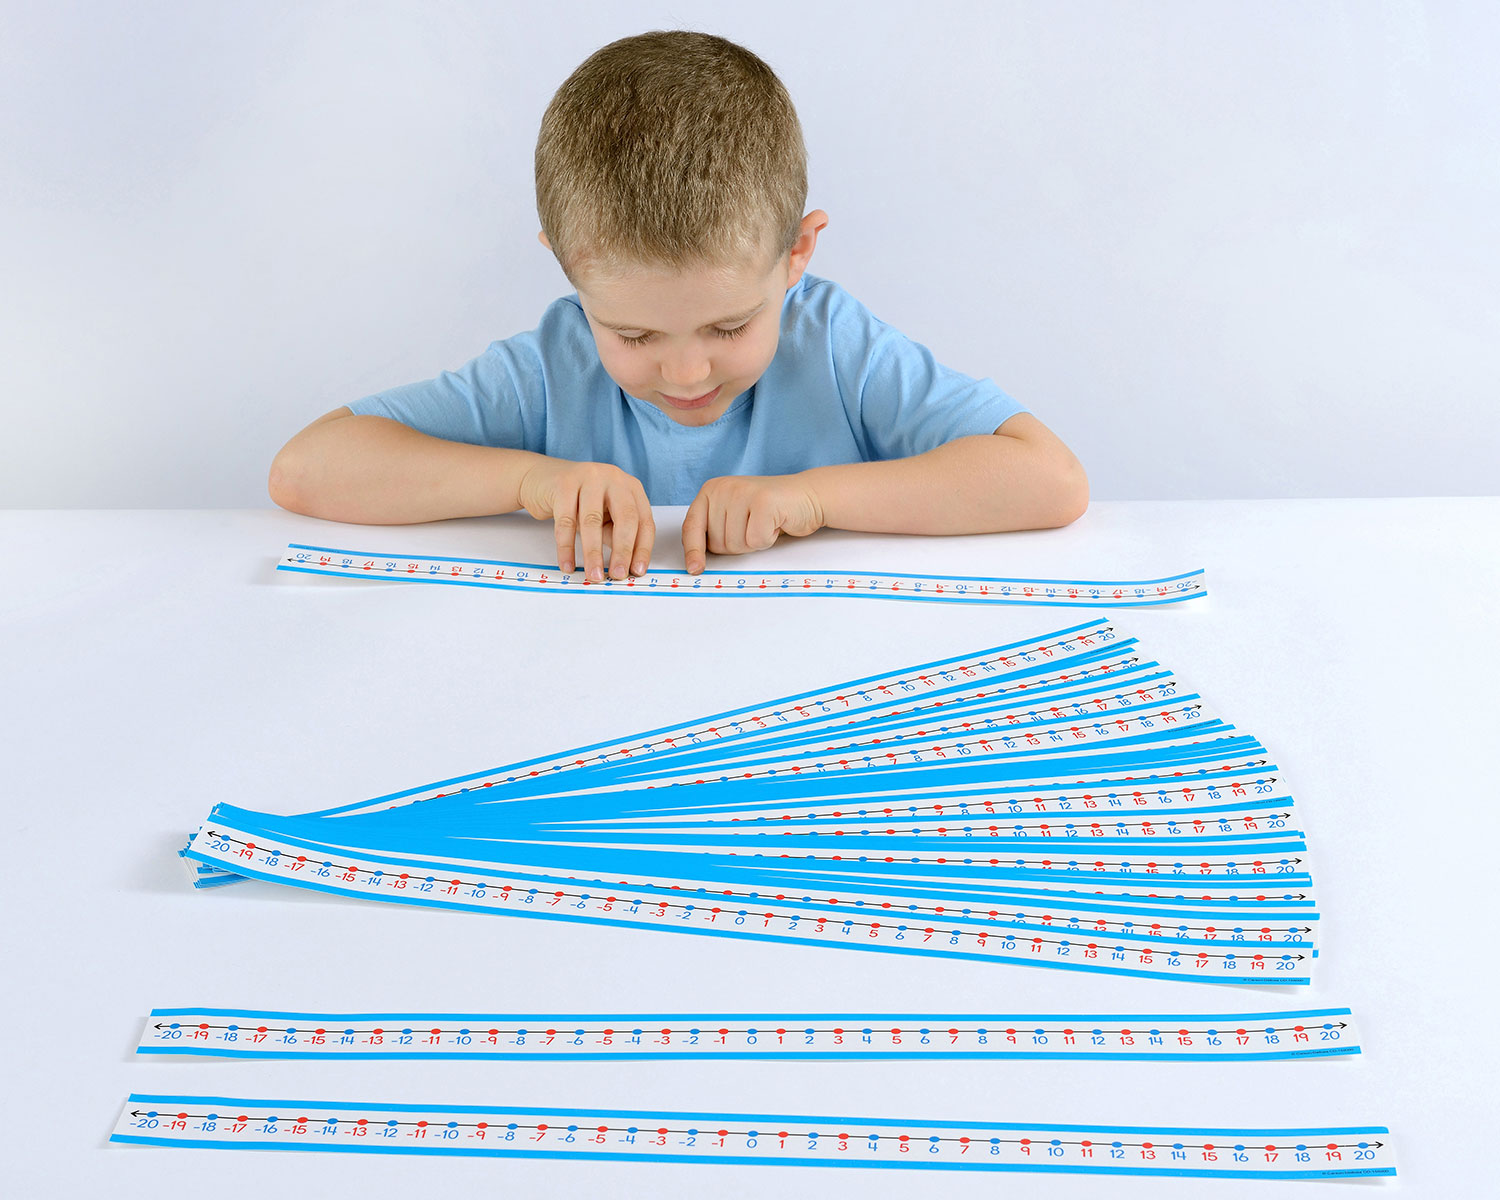 -20 to 20 Student Number Line